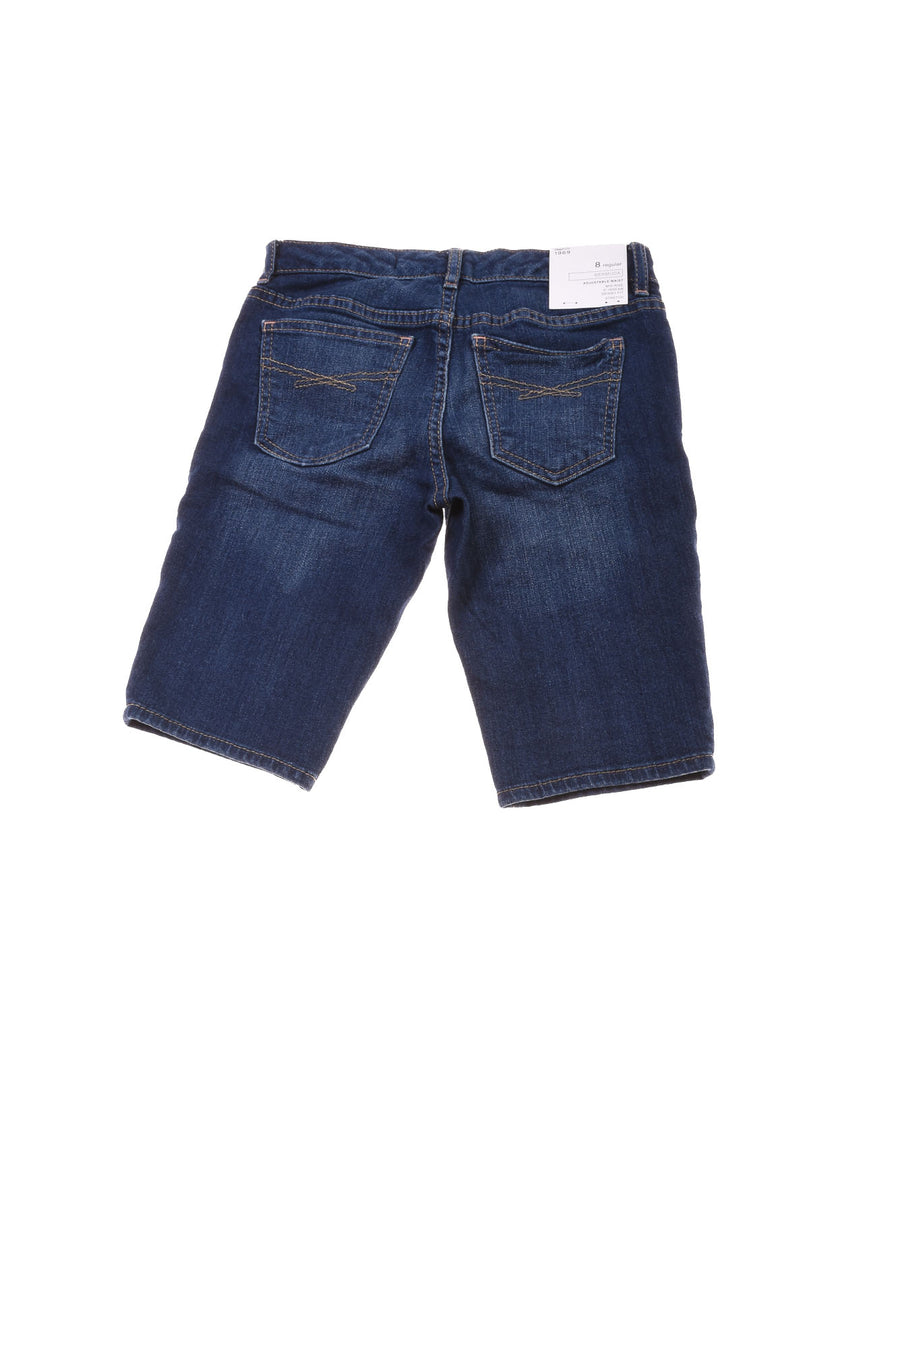 NEW Gap Kids Girl's Shorts 8 Regular Blue